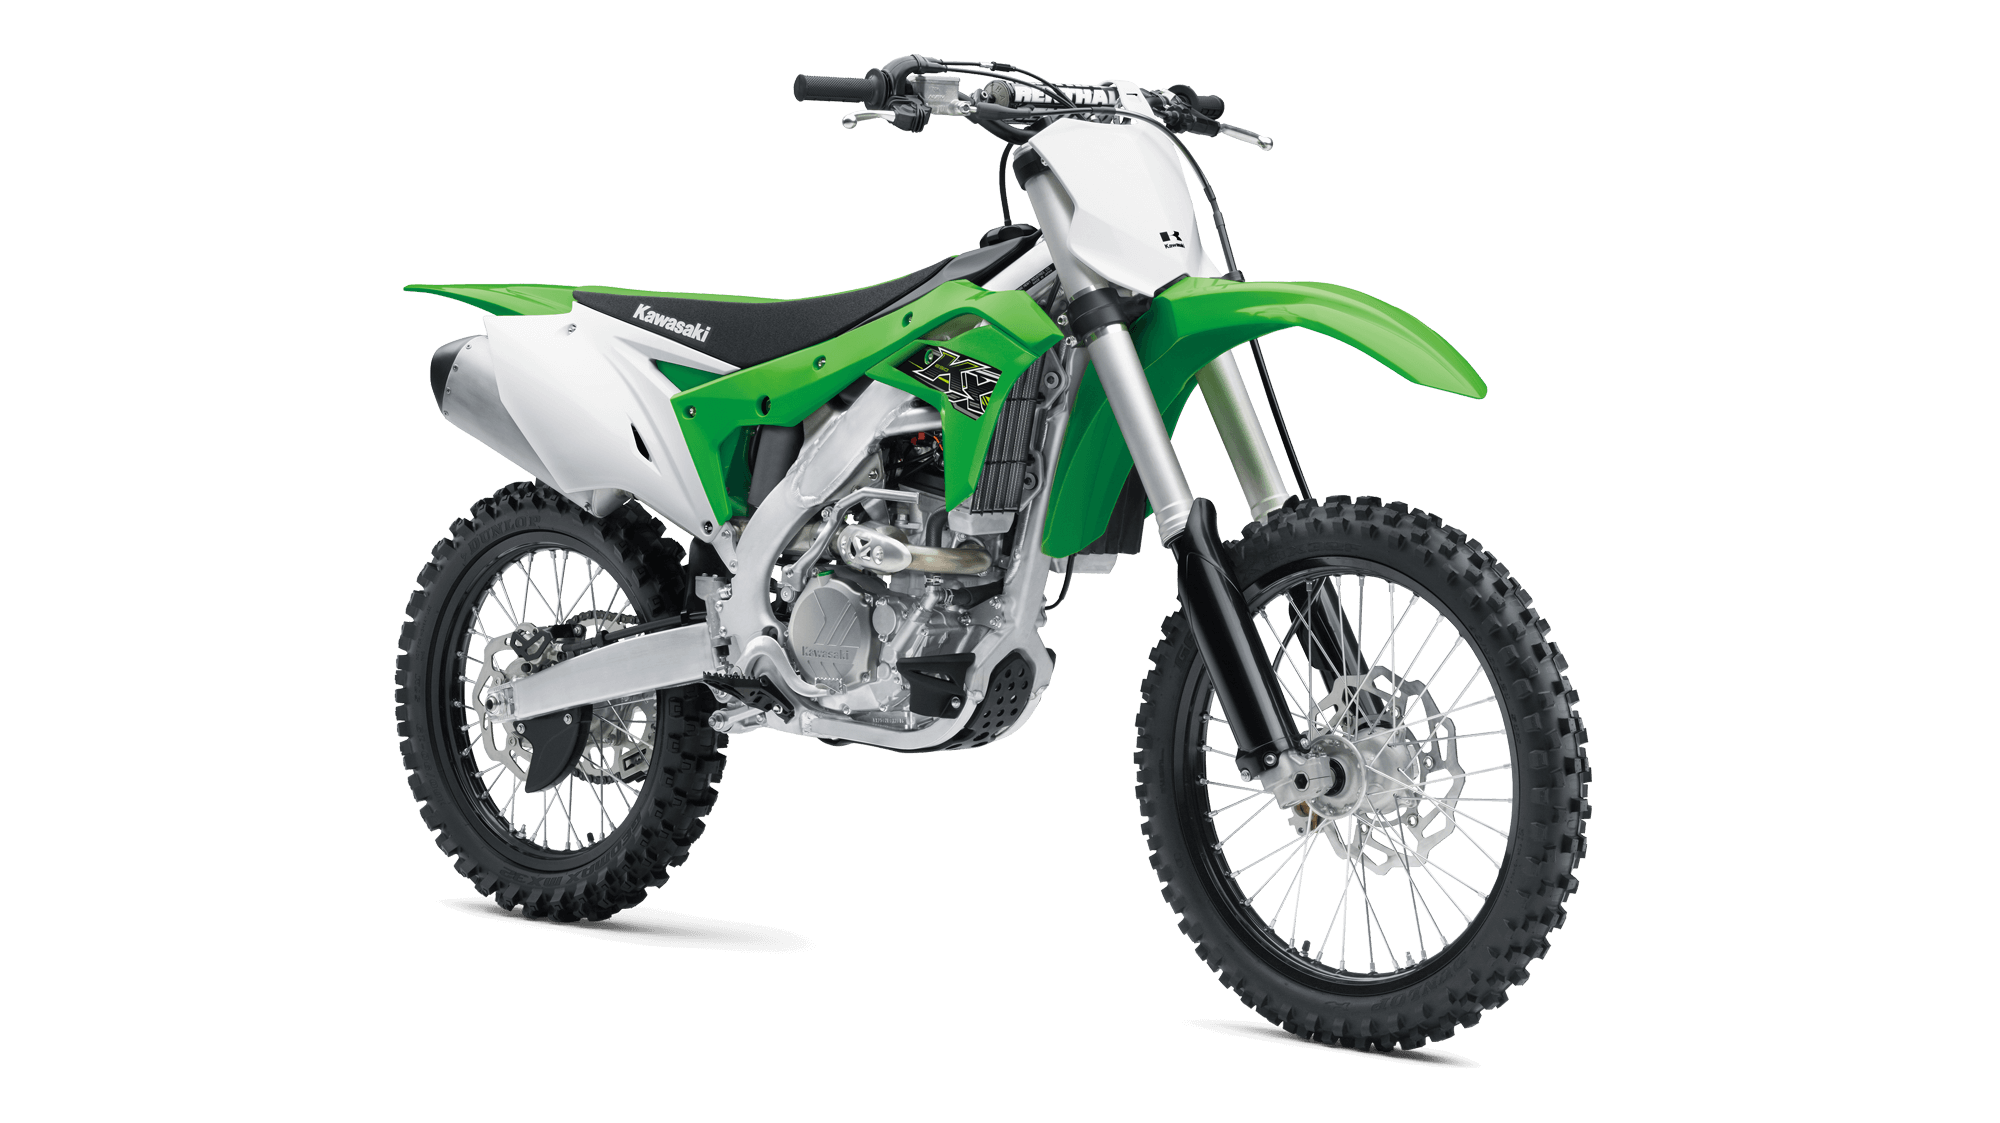 2019 KX™250 KX™ Motorcycle by Kawasaki